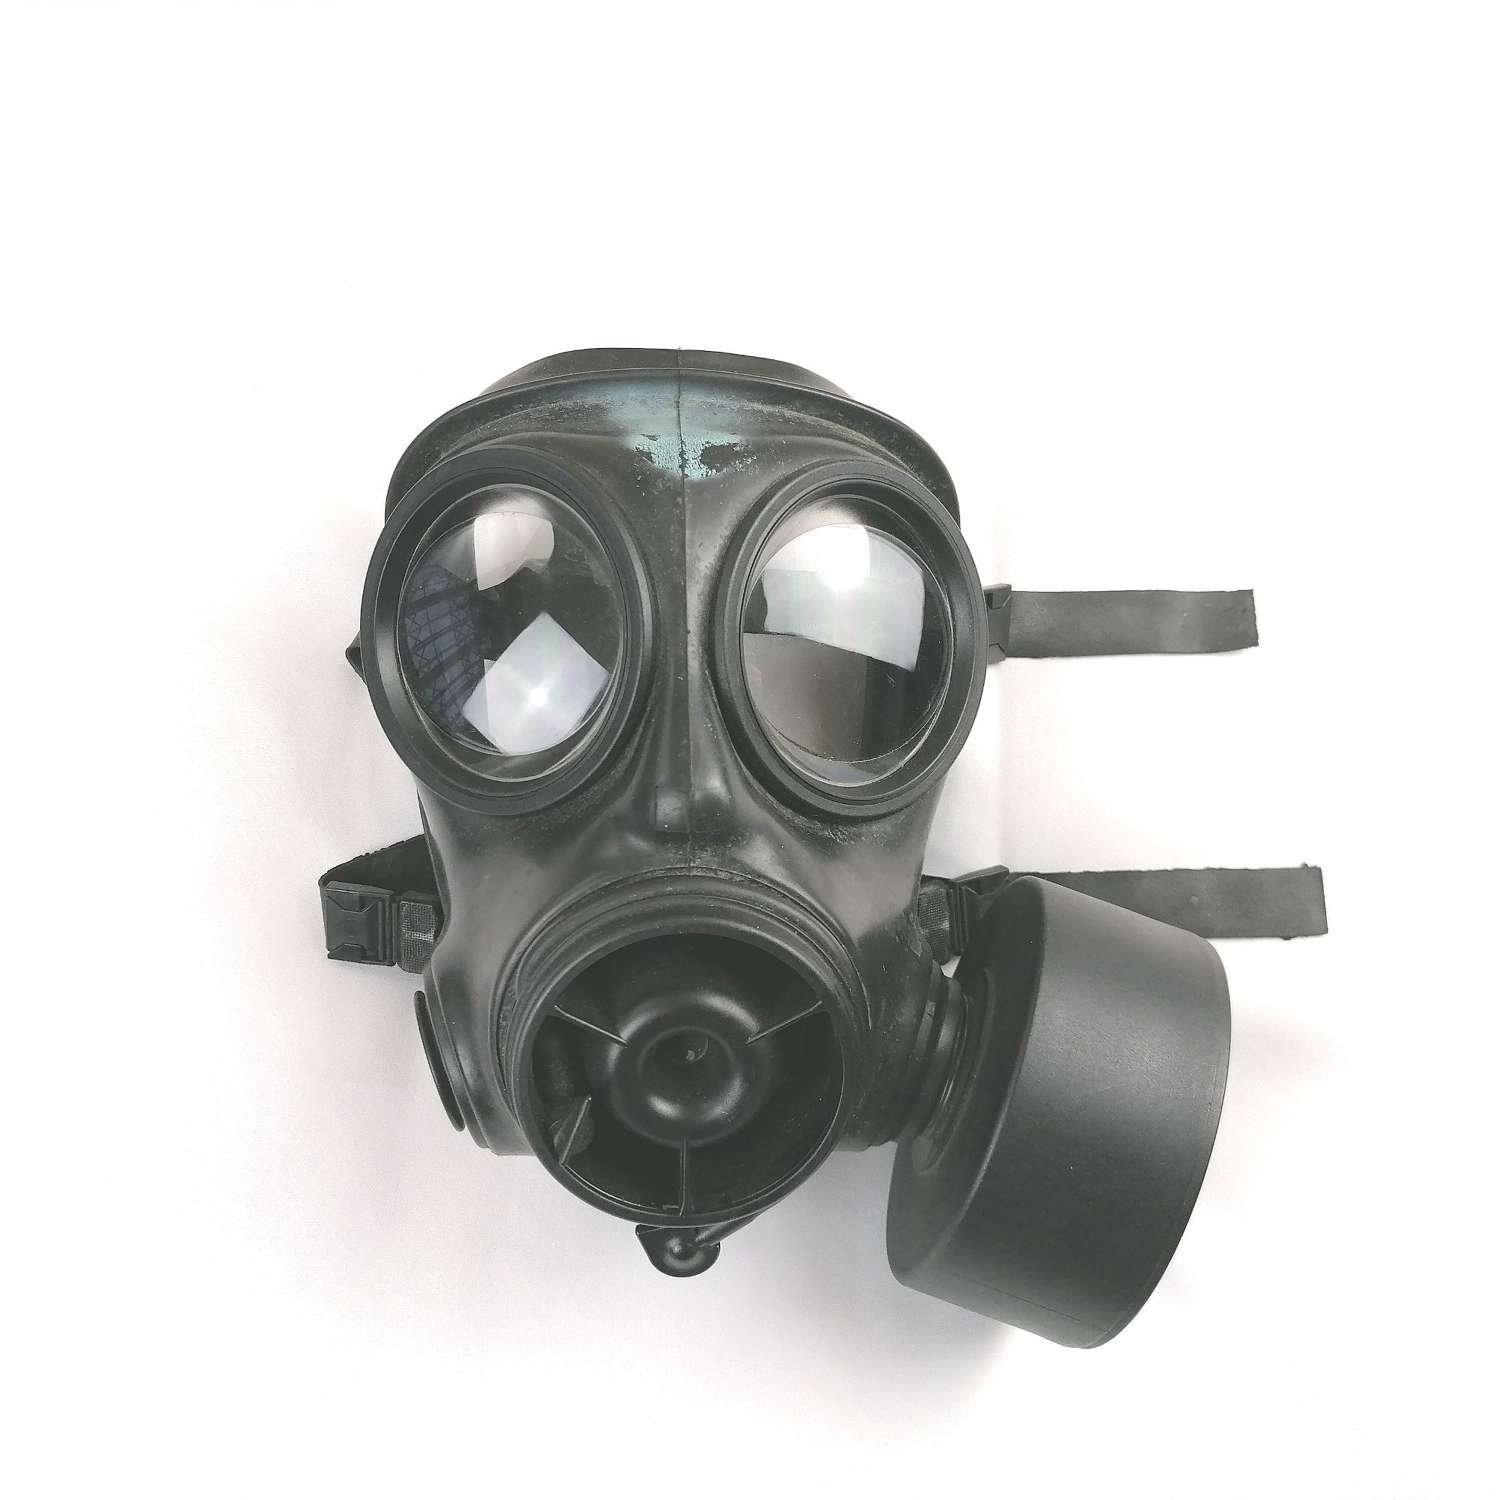 1989 Dated S10 NBC/ CBRN Respirator & Canister